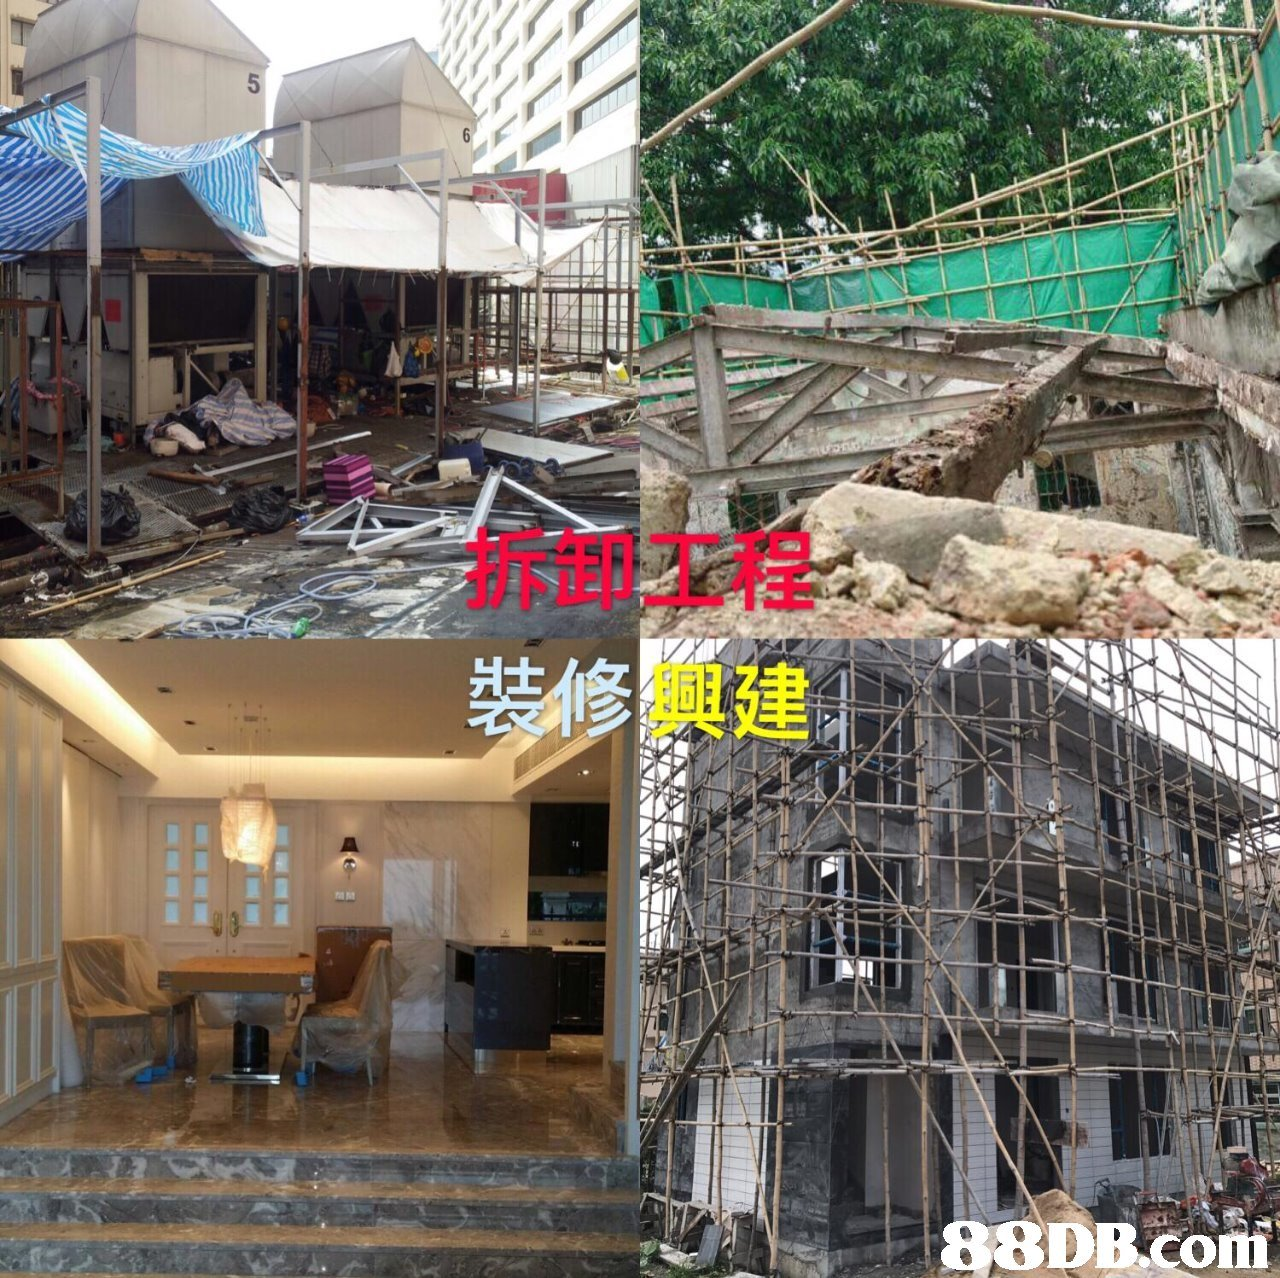 拆卸工程 興建 88DB.conm  Property,Building,Architecture,House